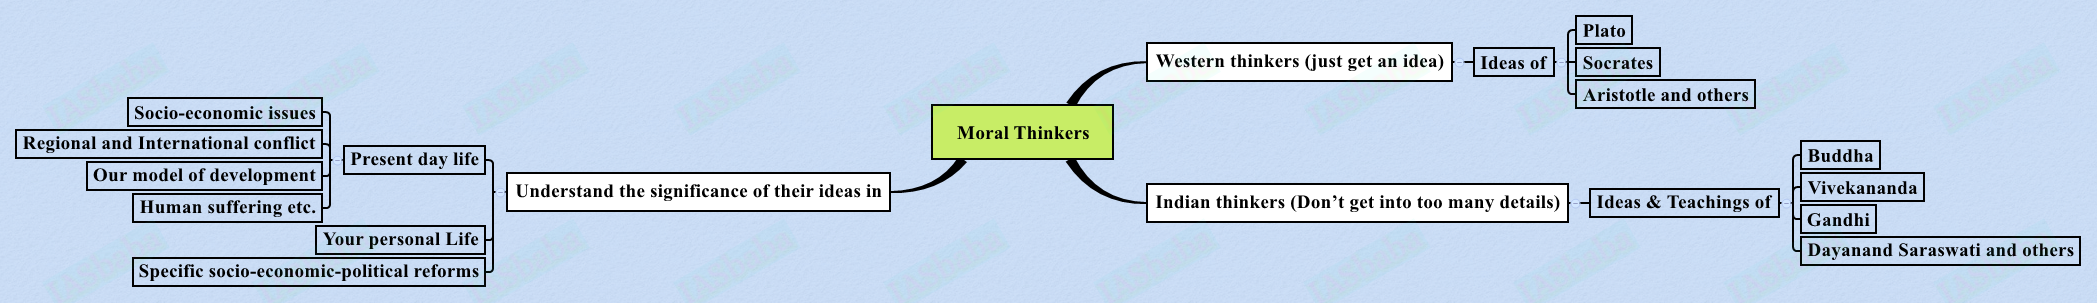 Moral Thinkers